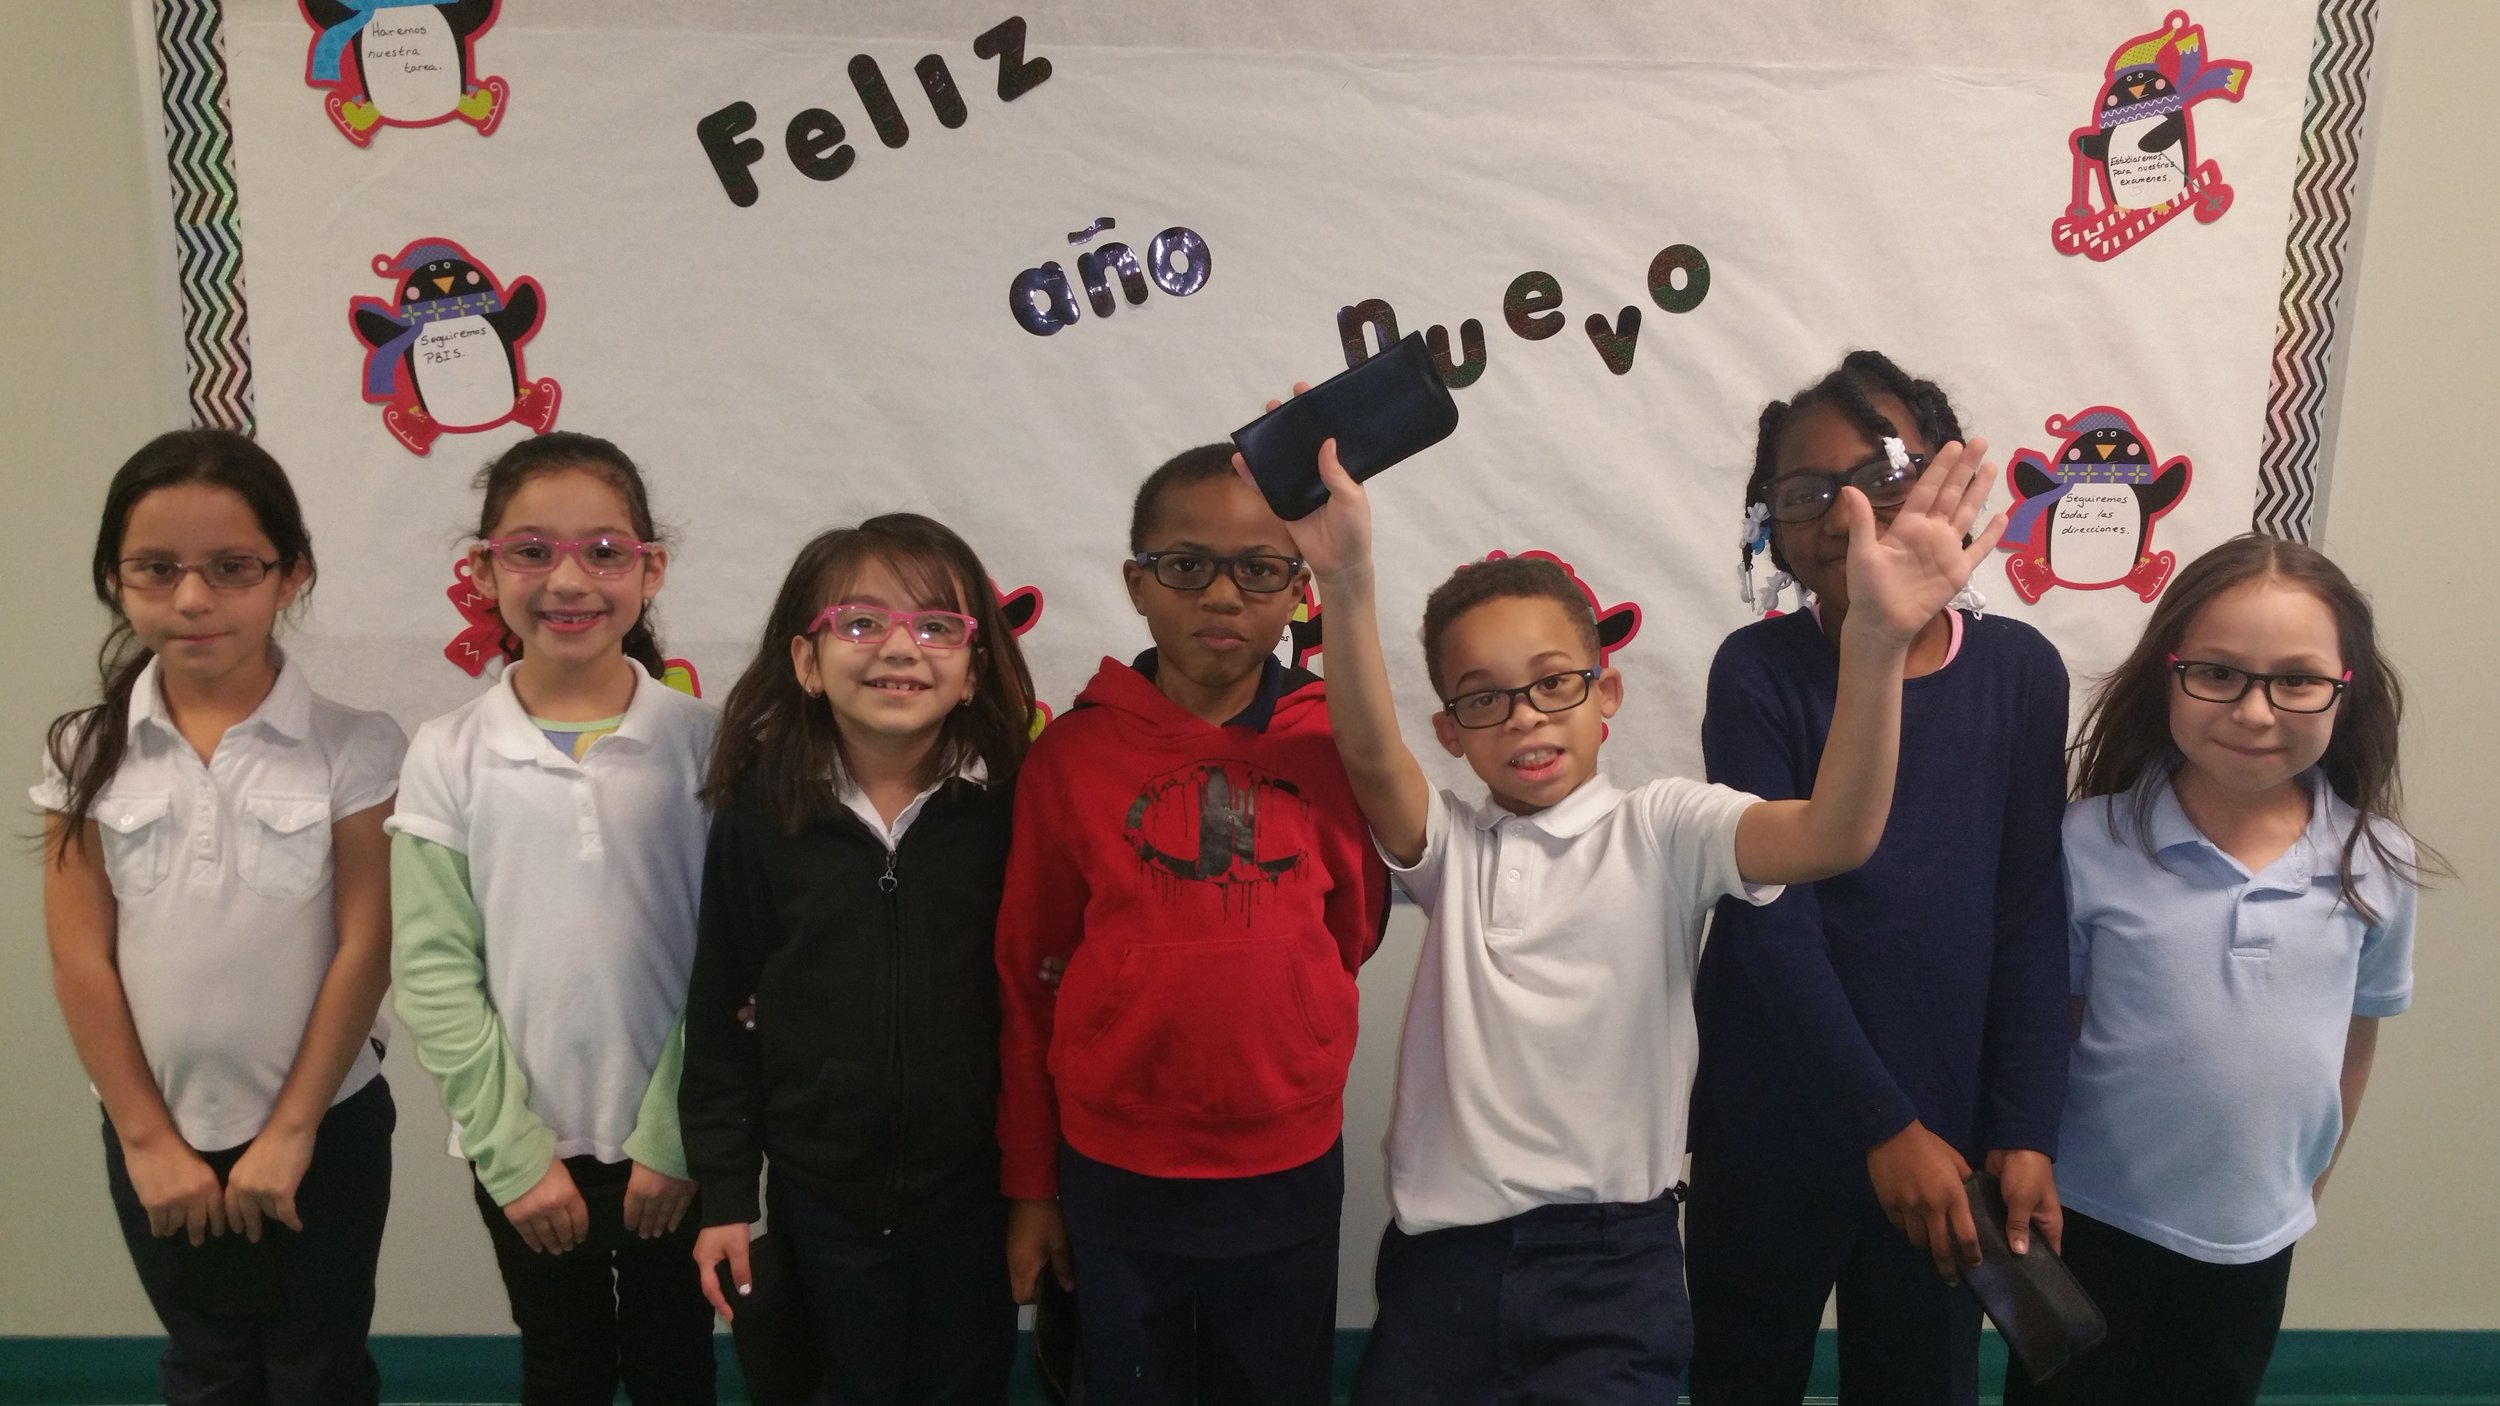 Students in Calumet School District 132 with their new eye glasses